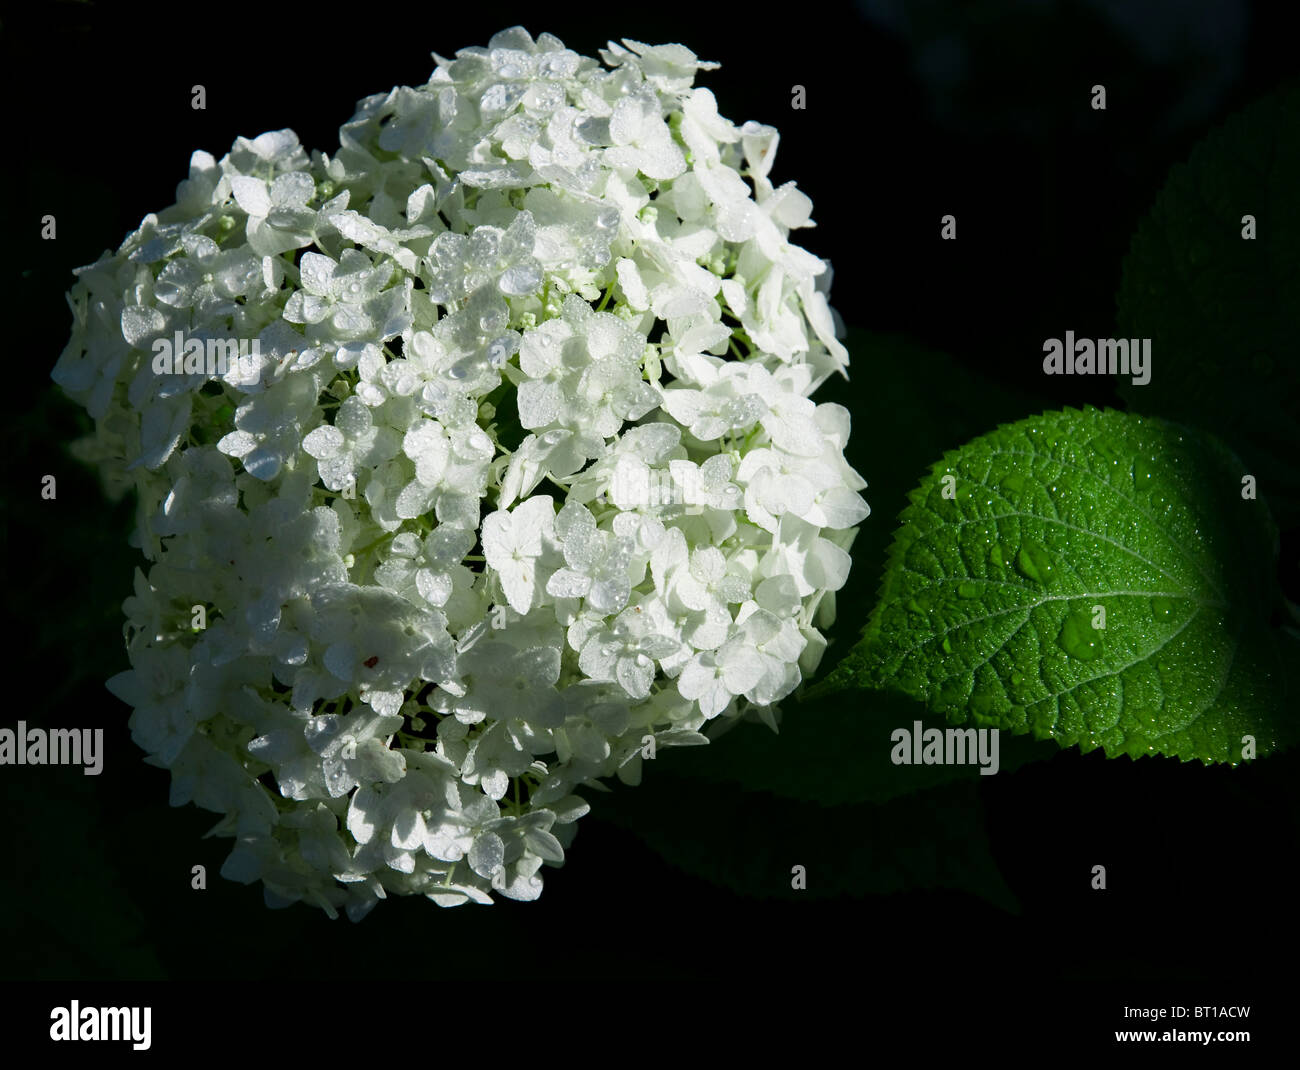 White hydrangea flowers and green sheet with raindrops against black background. Stock Photo